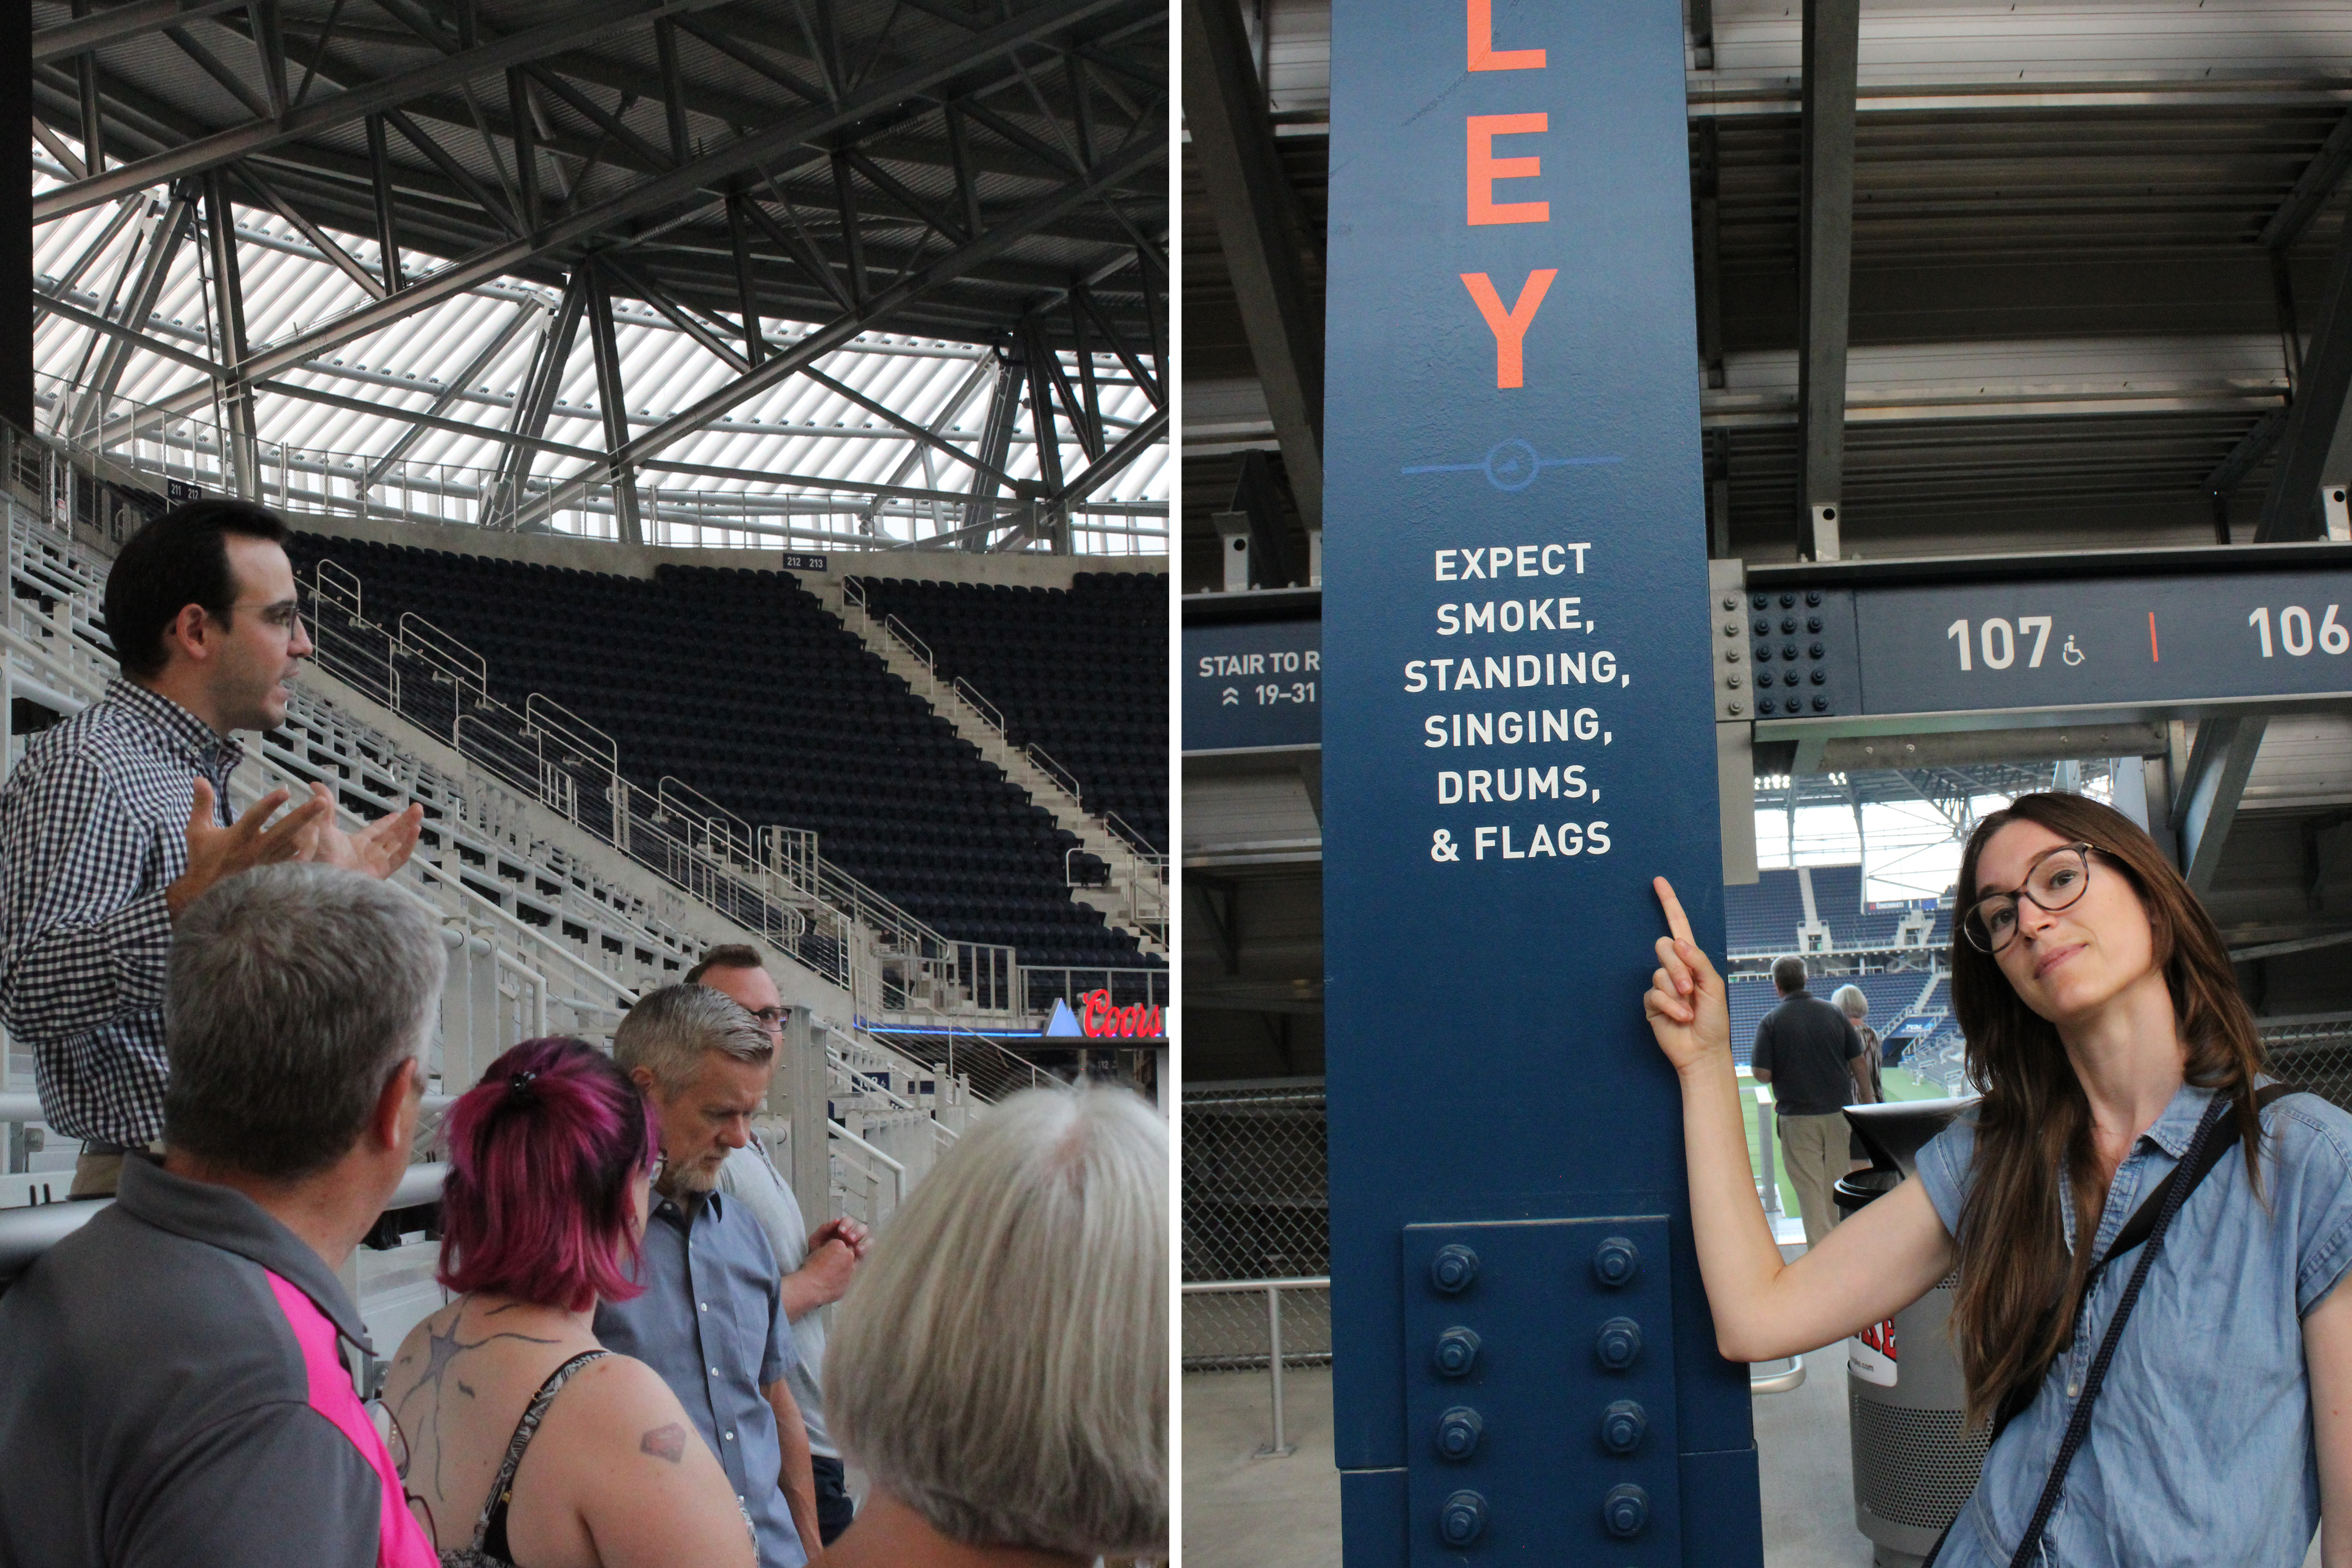 Images of the Bailey, FC Cincinnati's cheering section